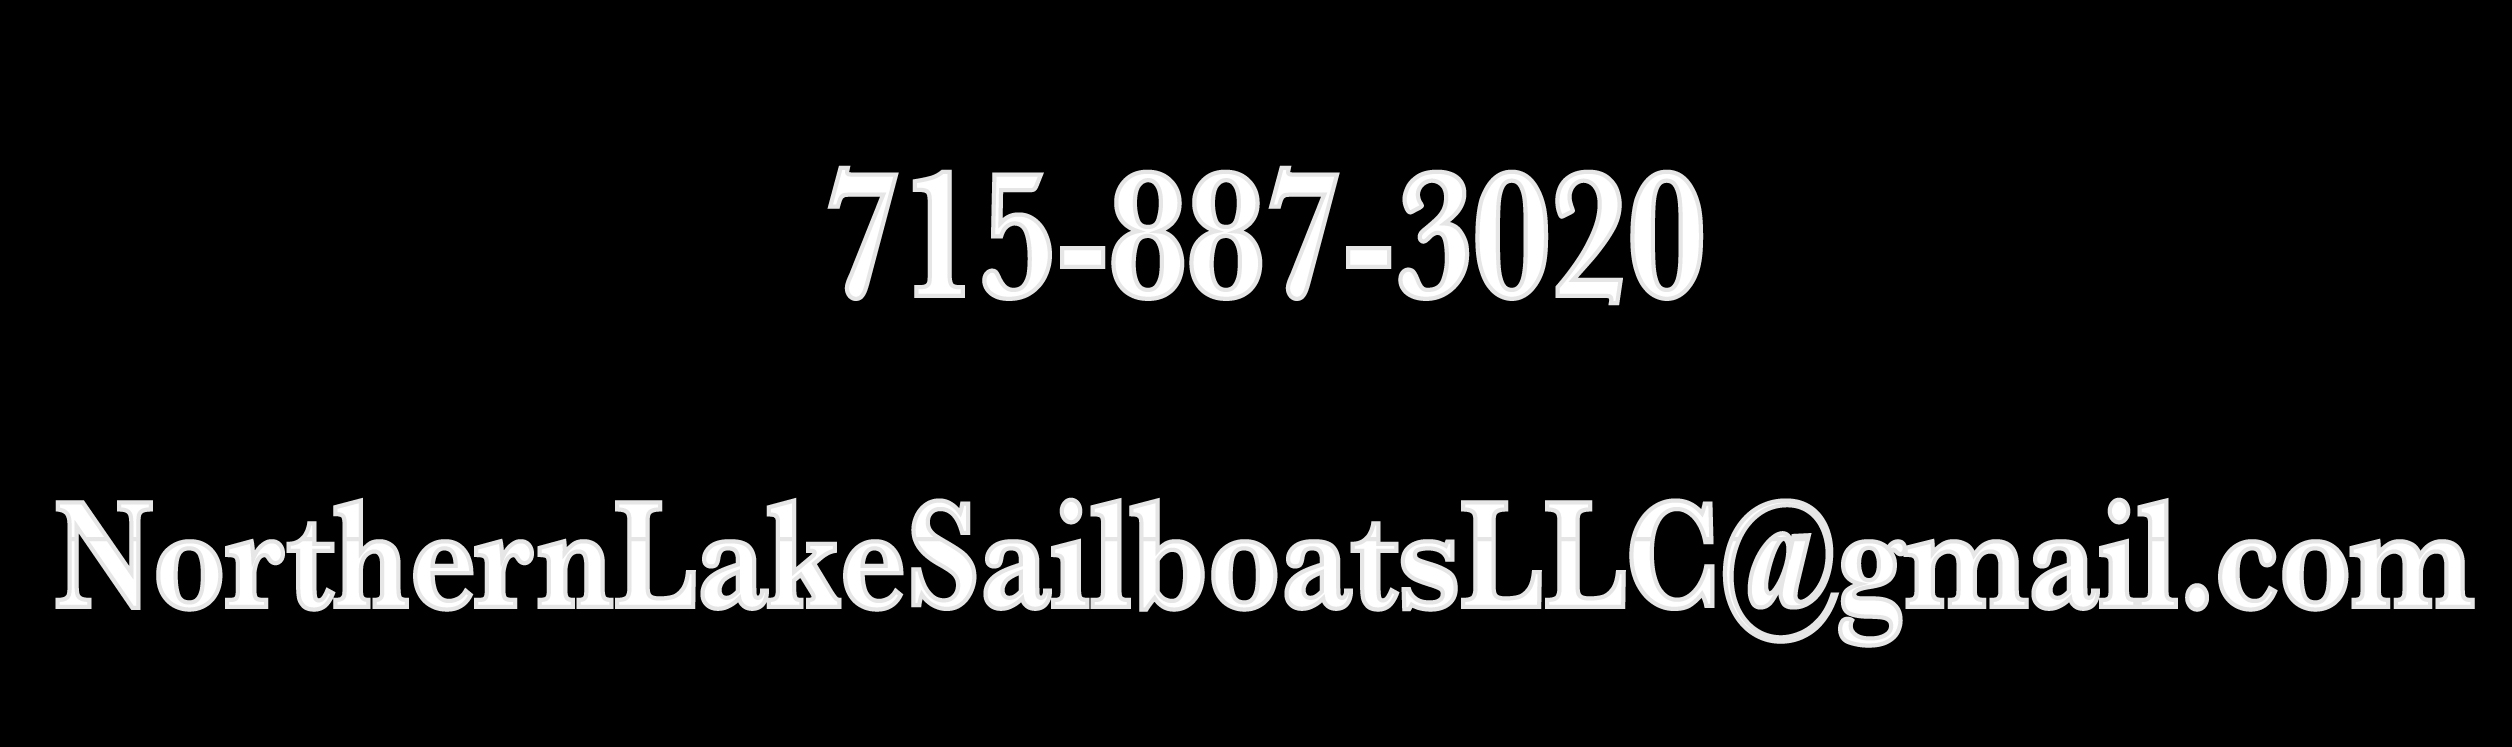 mailto:northernlakesailboatsllc@gmail.com?subject=Mail From Northern Lake Sailboats.com